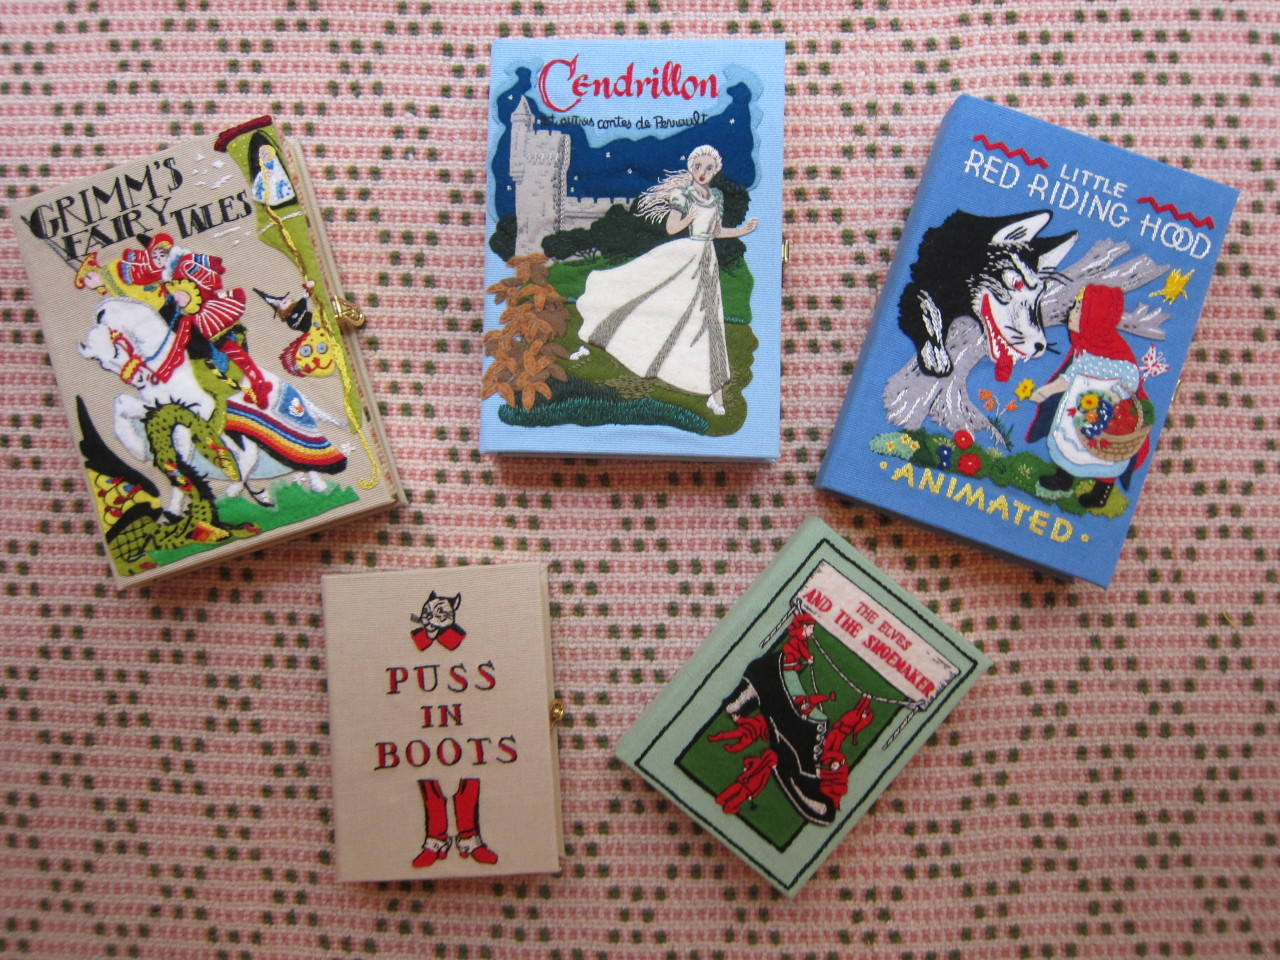 Fairy tale book-clutches by Olympia Le-Tan for Charlotte Olympia.